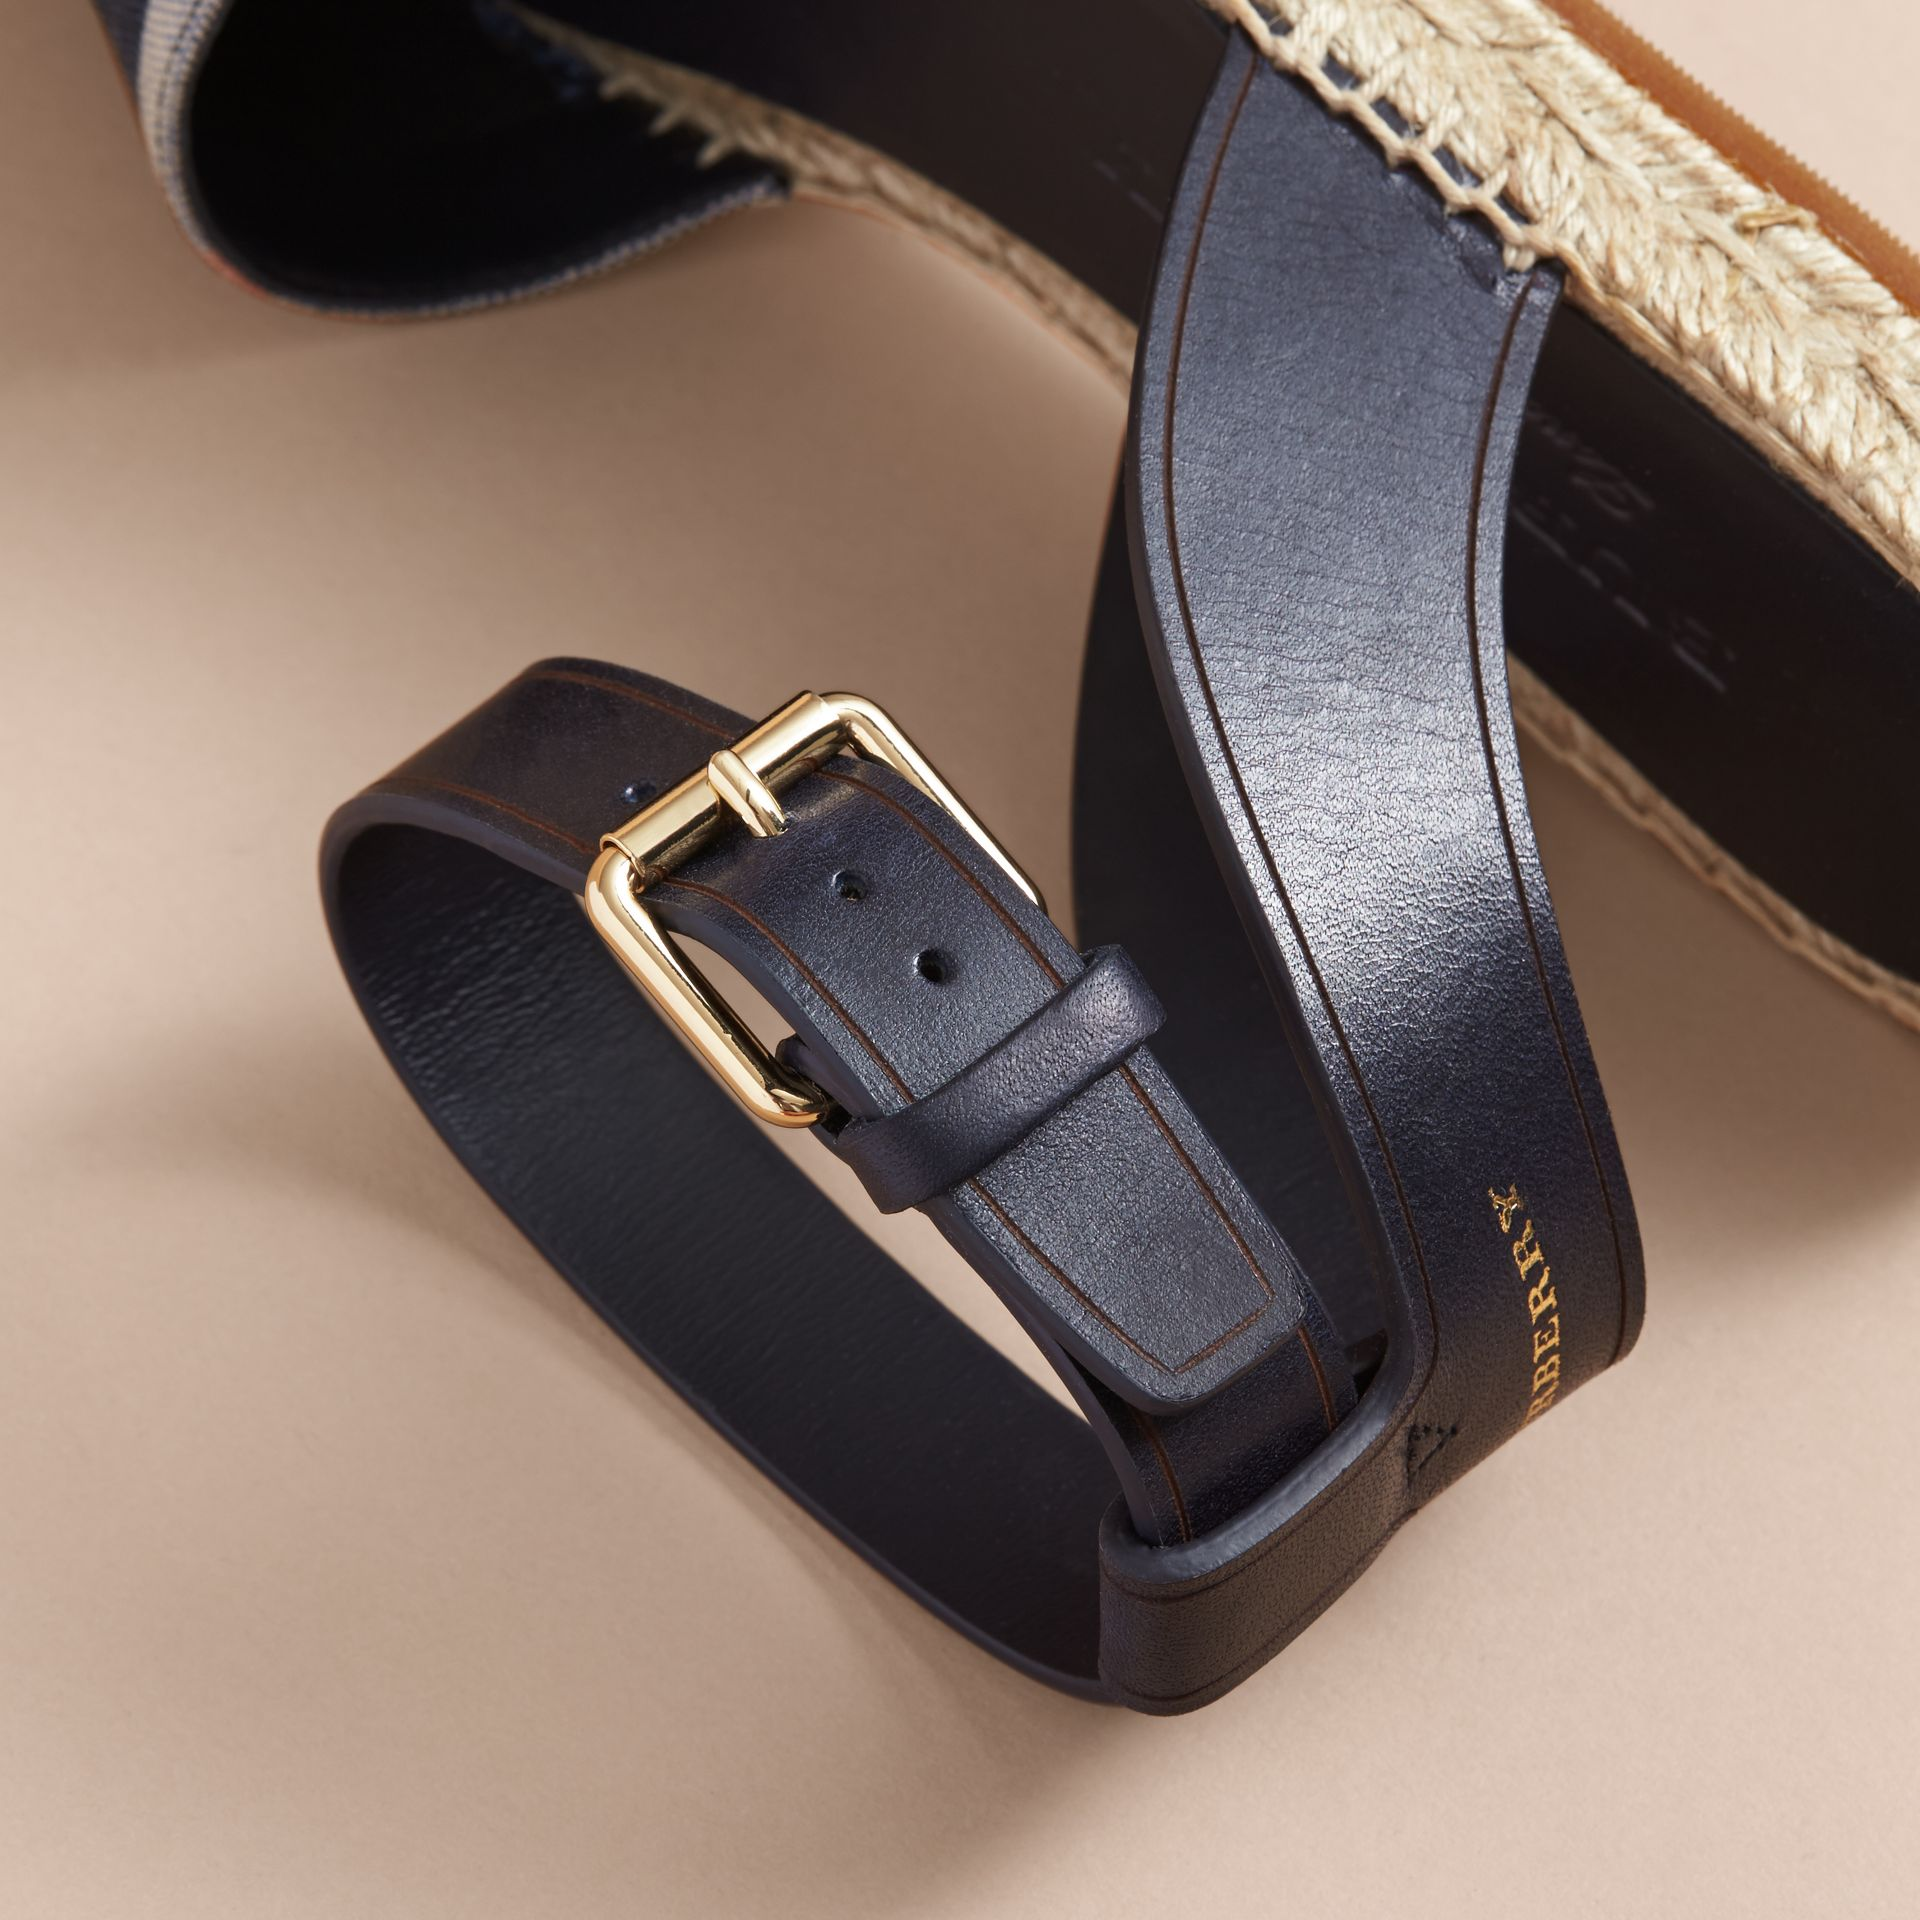 Leather and Check Linen Cotton Espadrille Sandals in Navy - Women | Burberry - gallery image 2